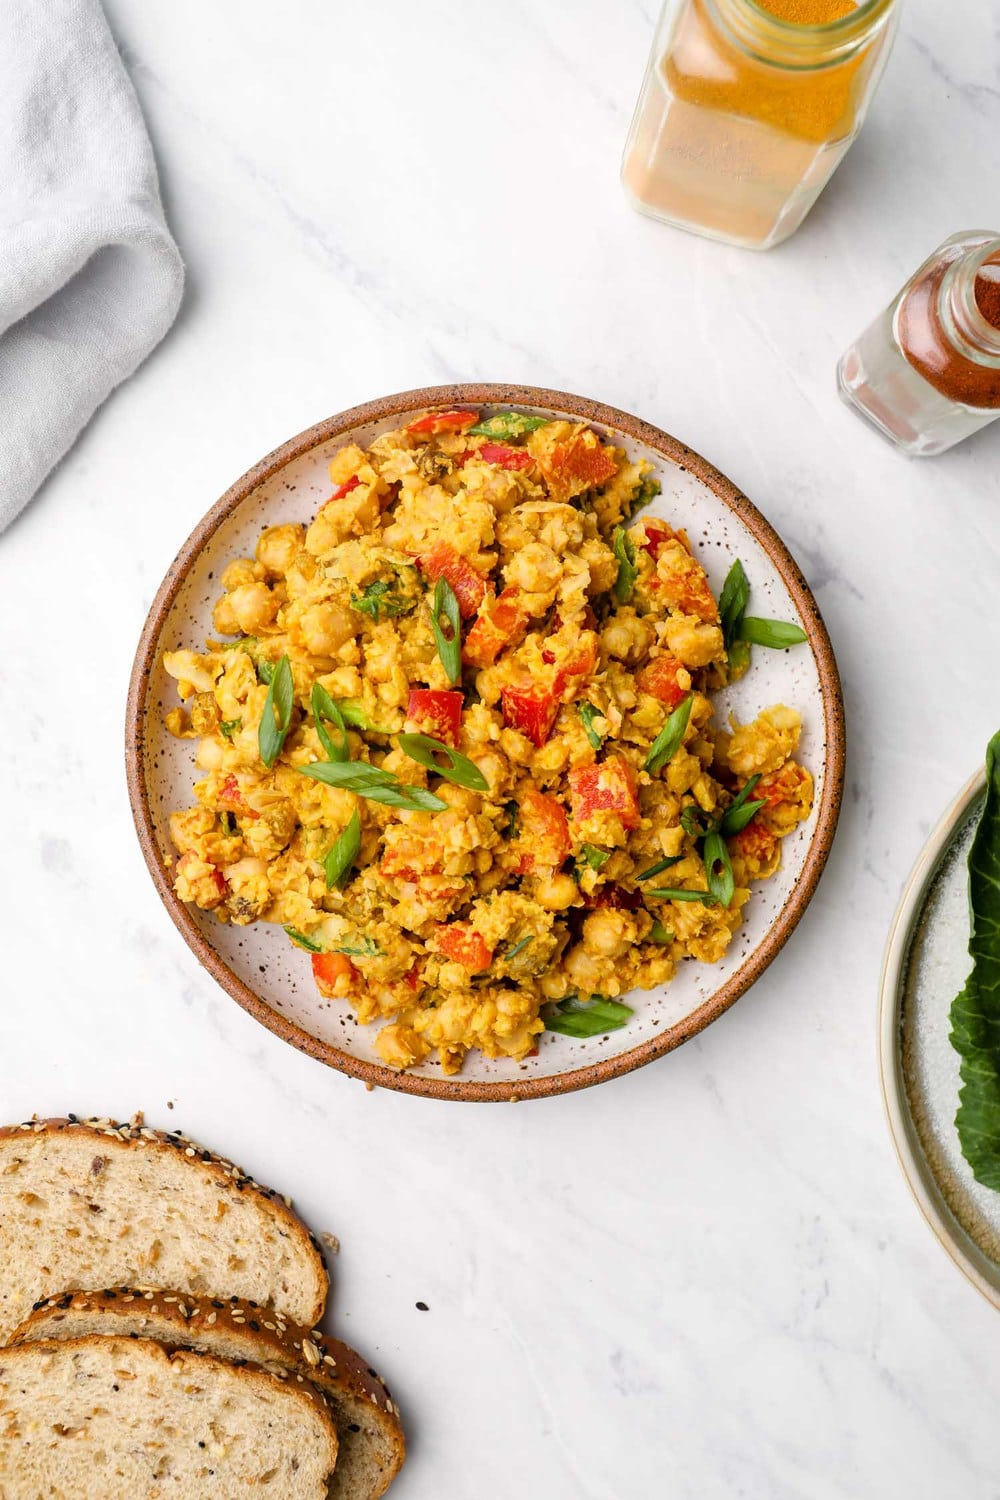 Curry Chickpea Salad on a plate with bell peppers.